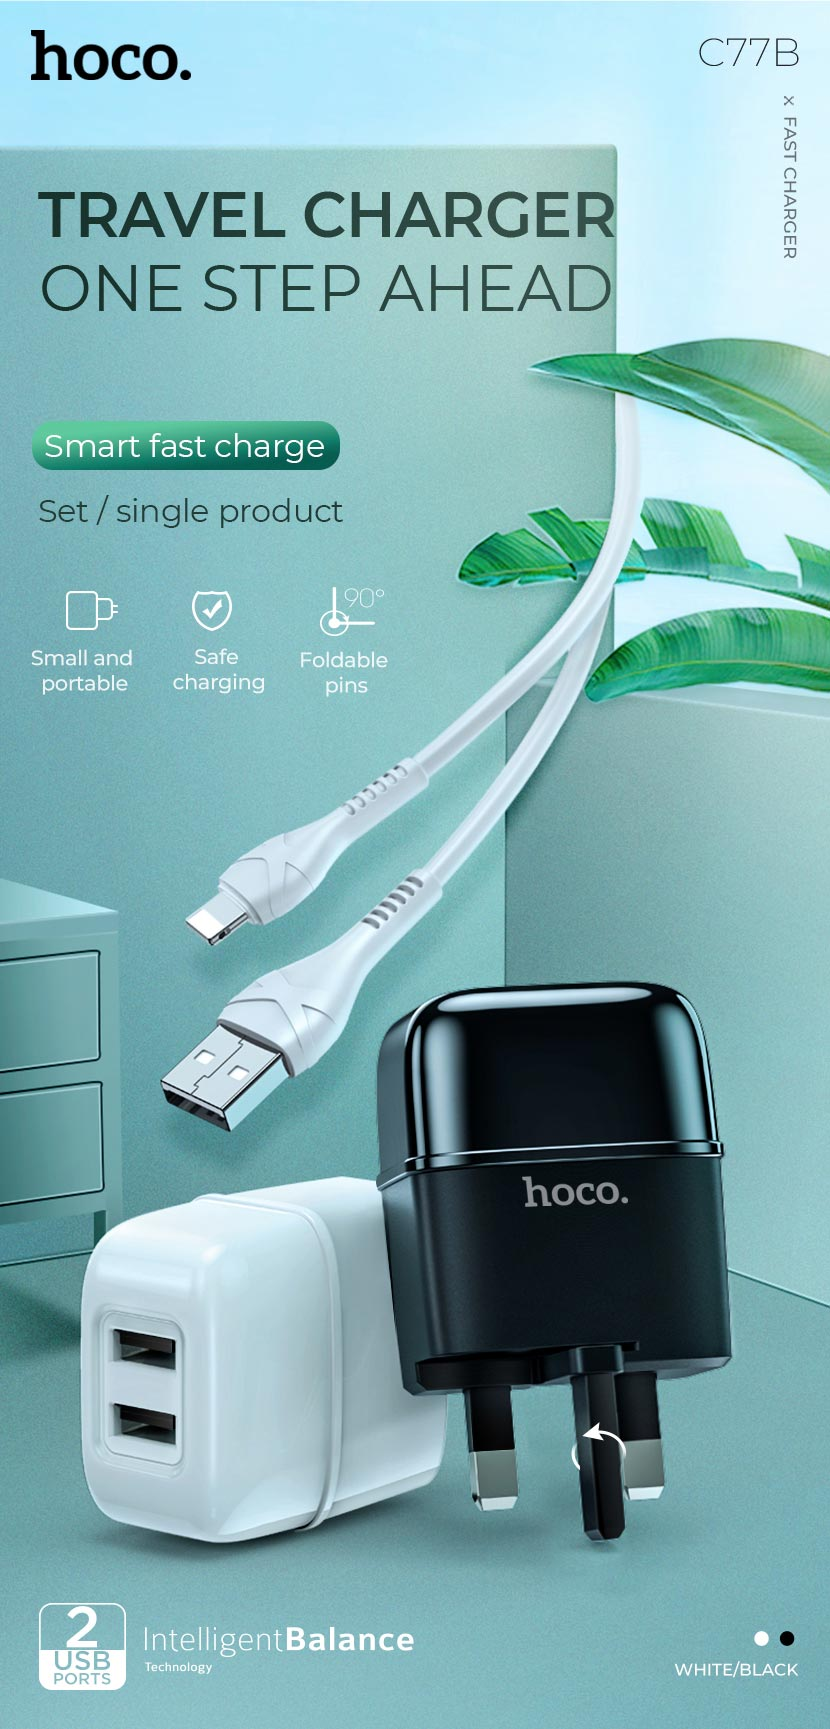 hoco news c77b highway dual port charger travel en